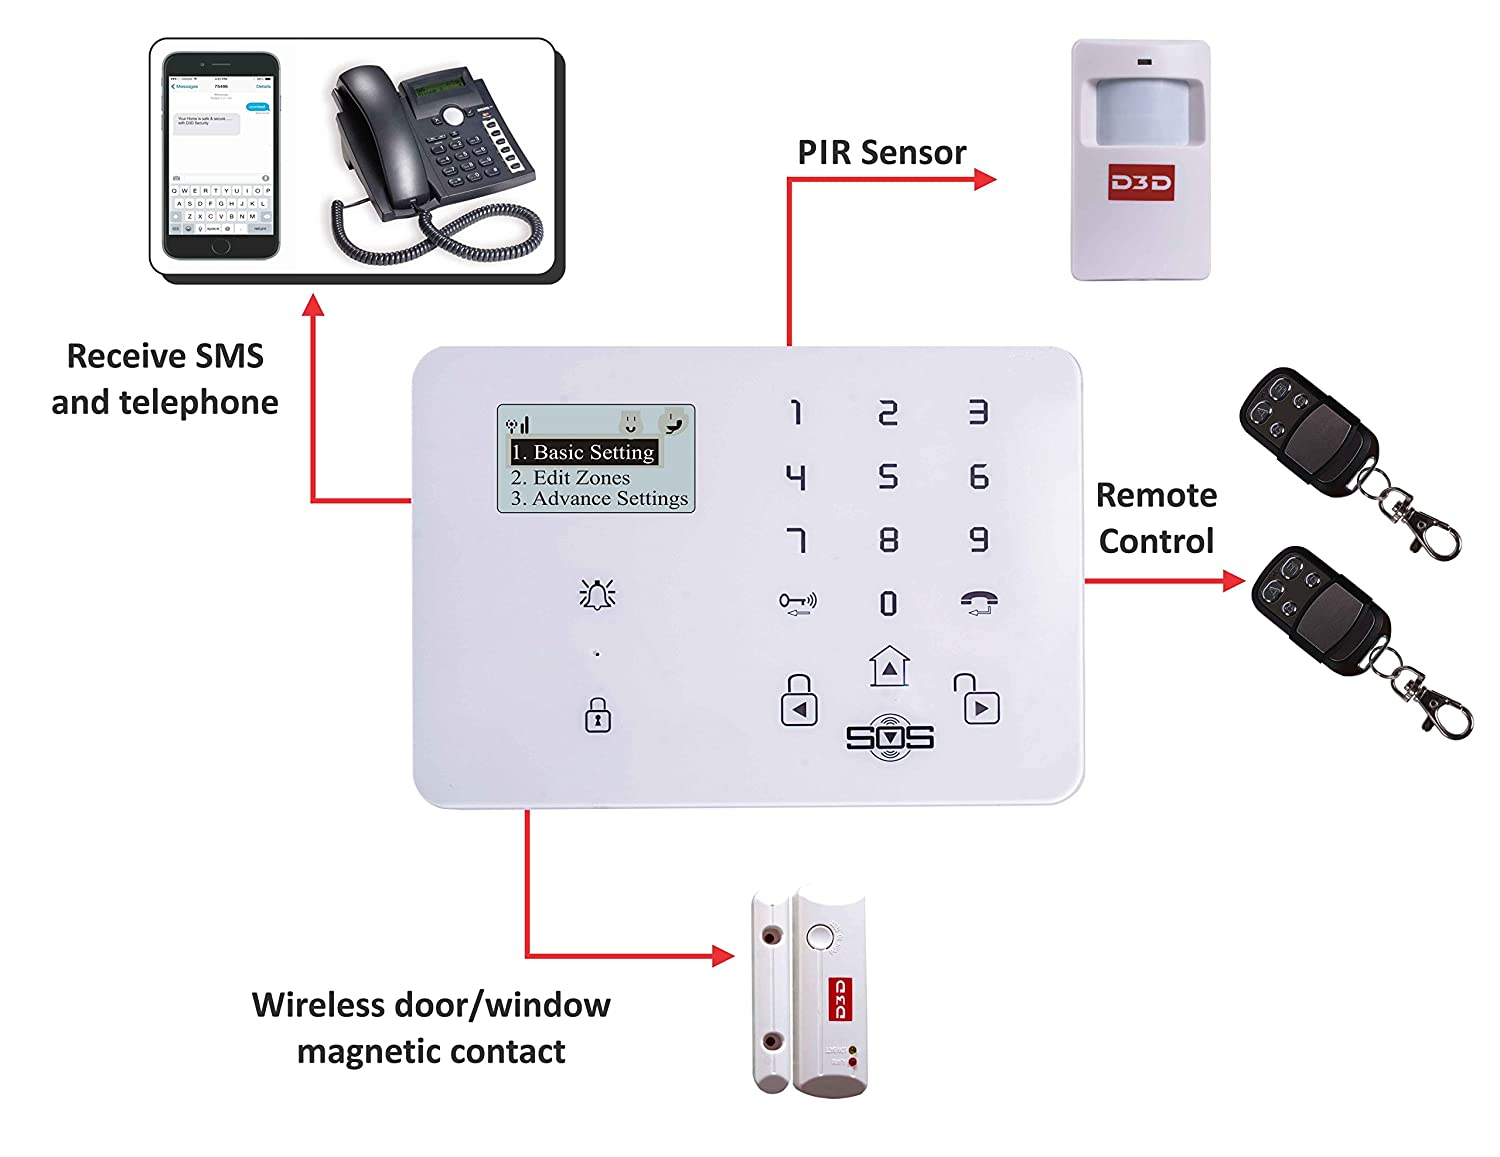 D3d Model D9 With 1 Door Pir Sensor 2 Remote Touch Screen Based Security System Smart Phone Ios Android Mobile Apps Wireless D91door1pir2remote